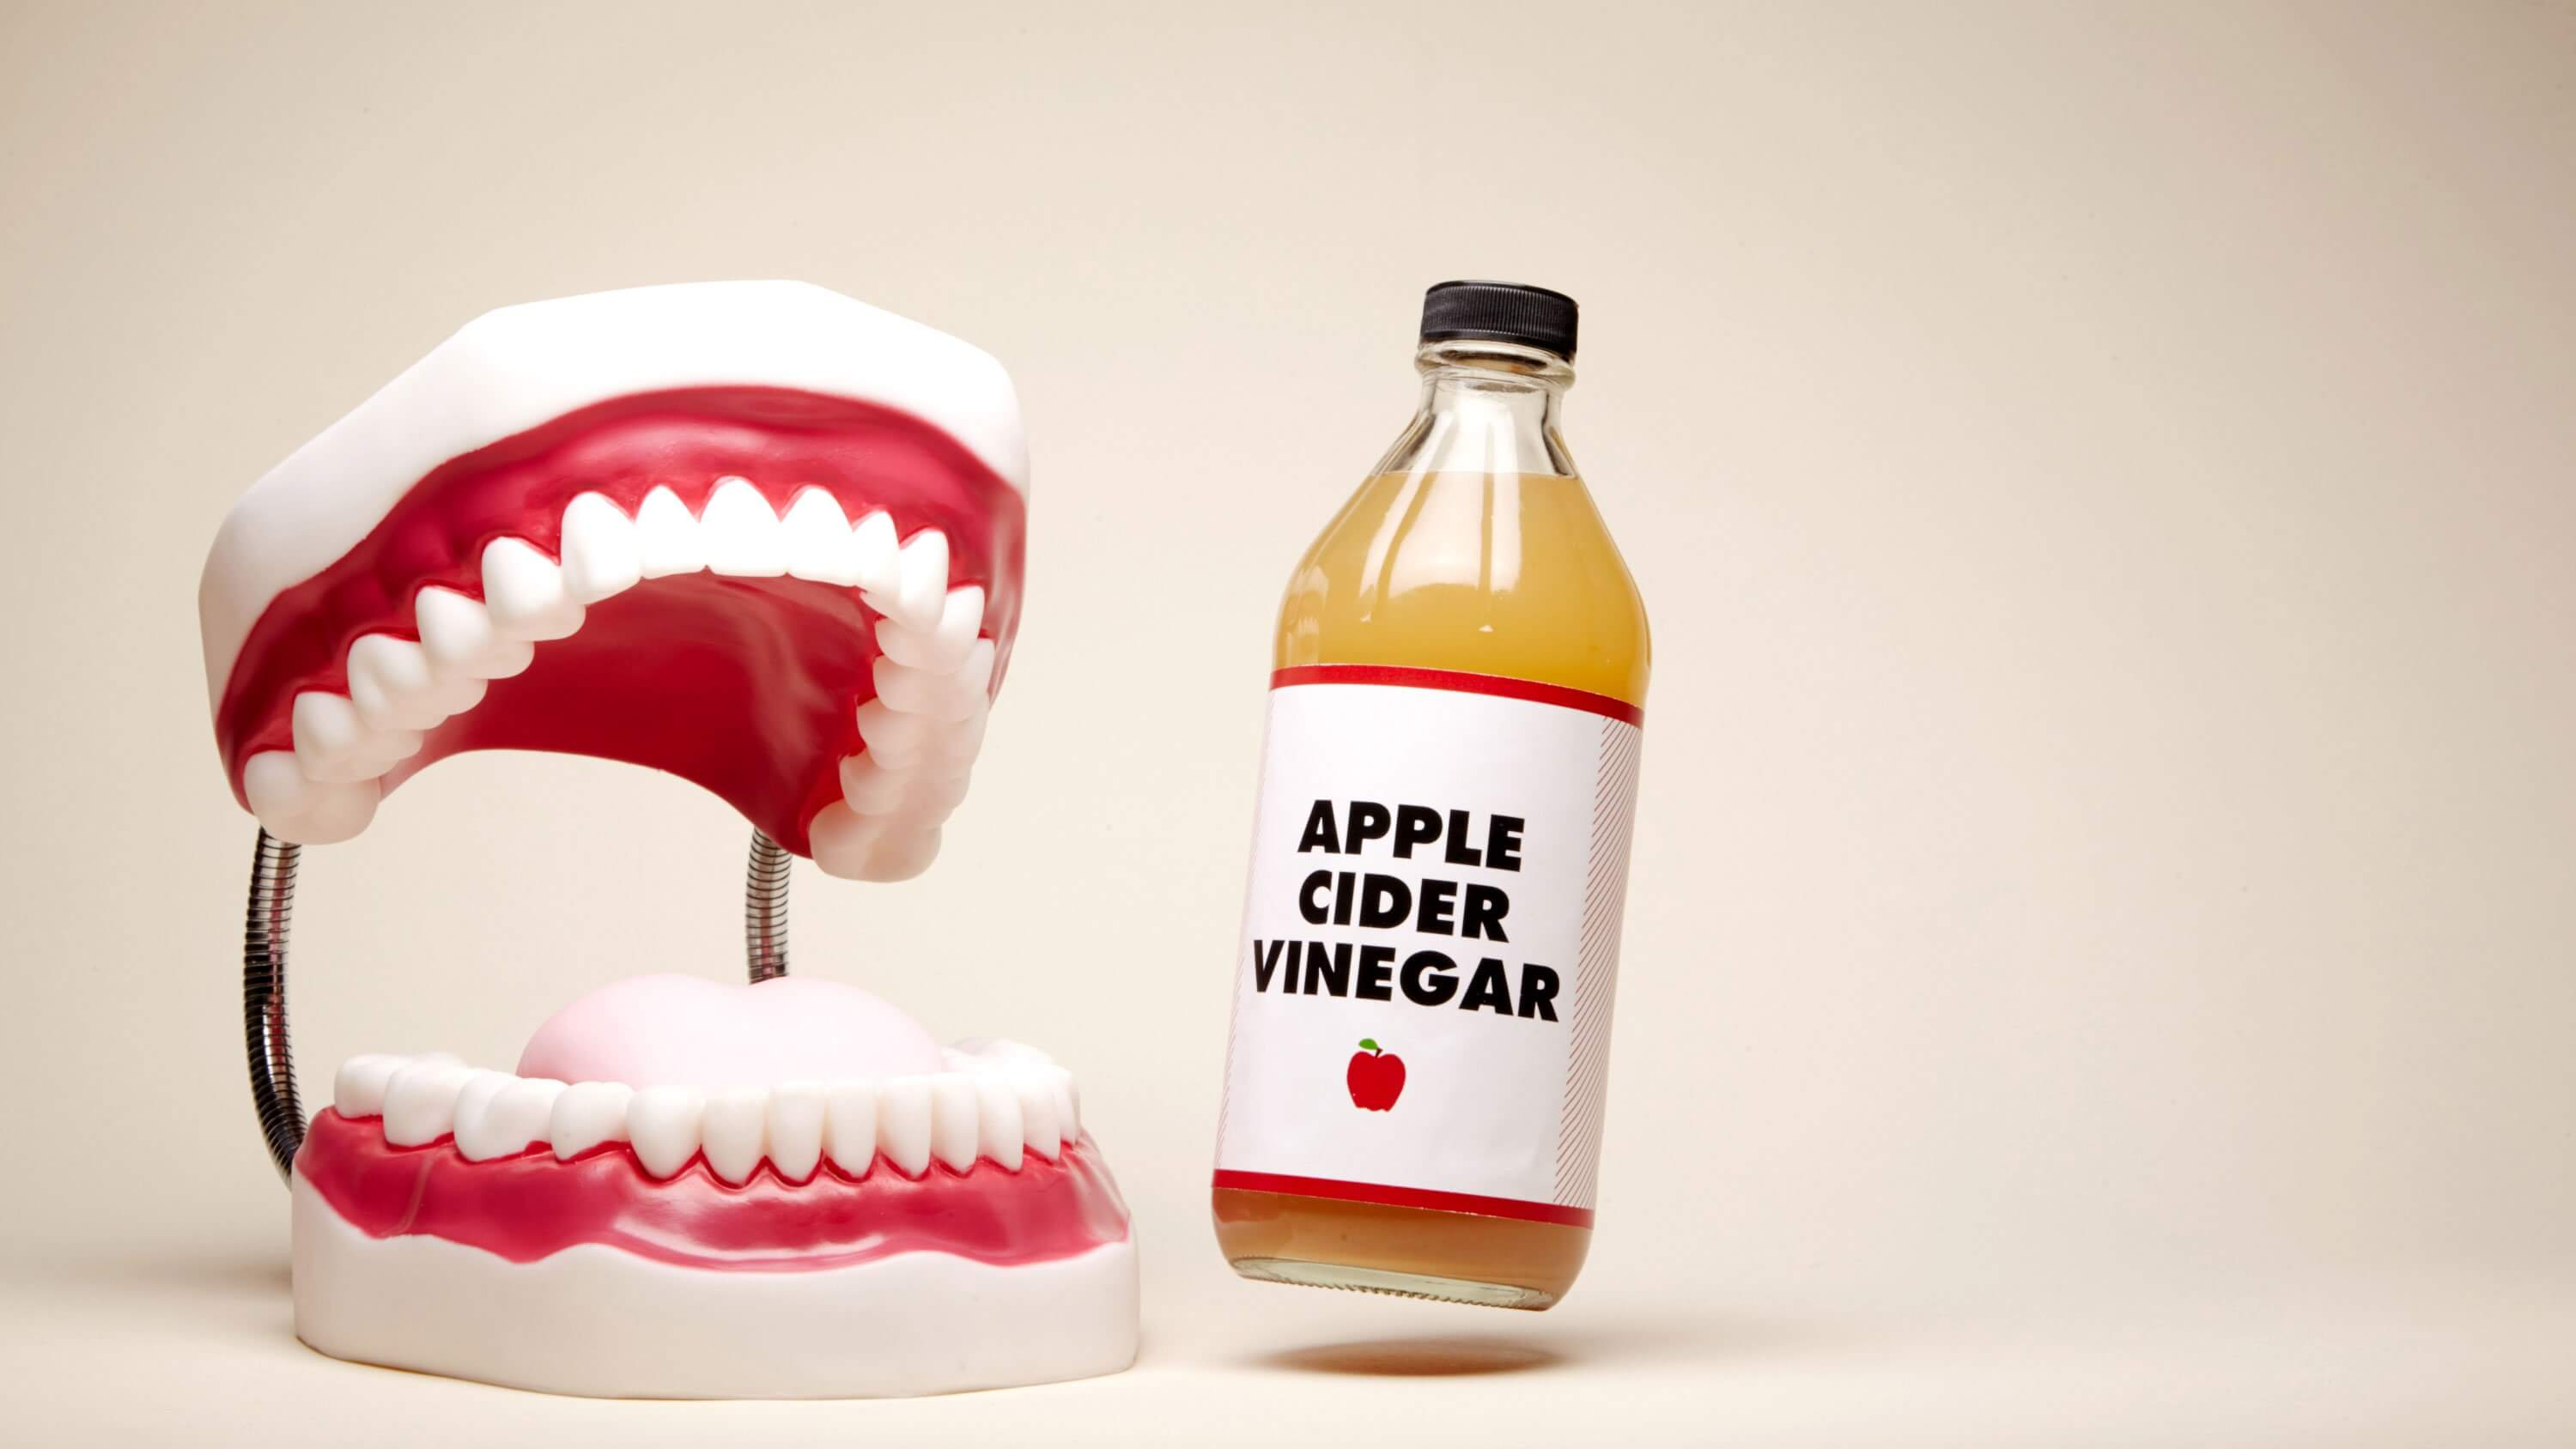 There are a lot of options when it comes to apple cider vinegar